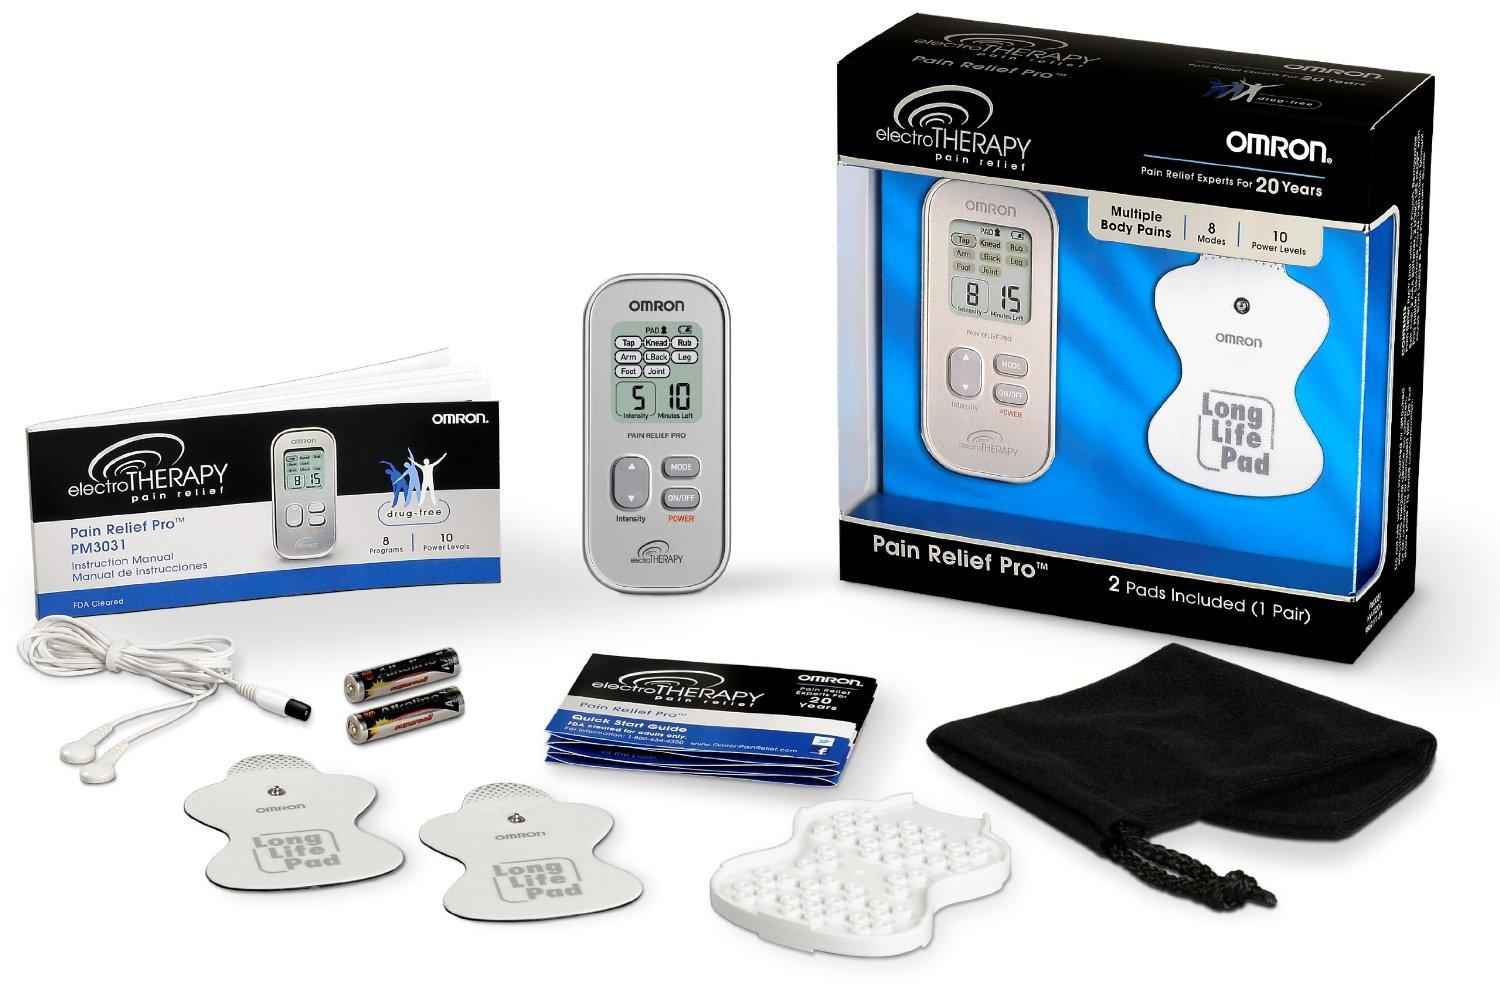 $38.15 Omron Pain Relief Pro PM3031